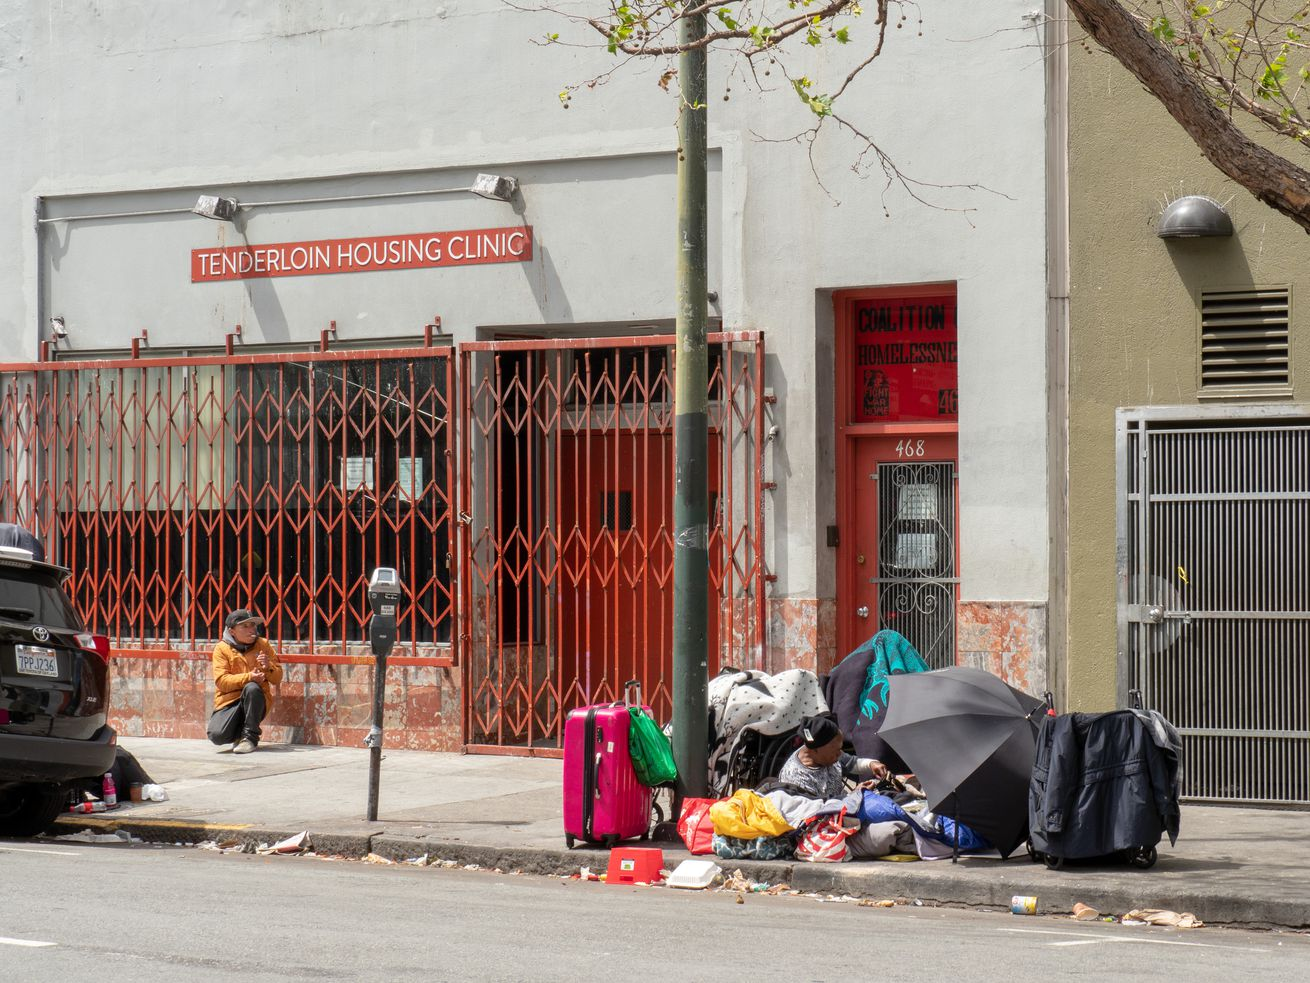 The Tenderloin Housing Clinic in San Francisco